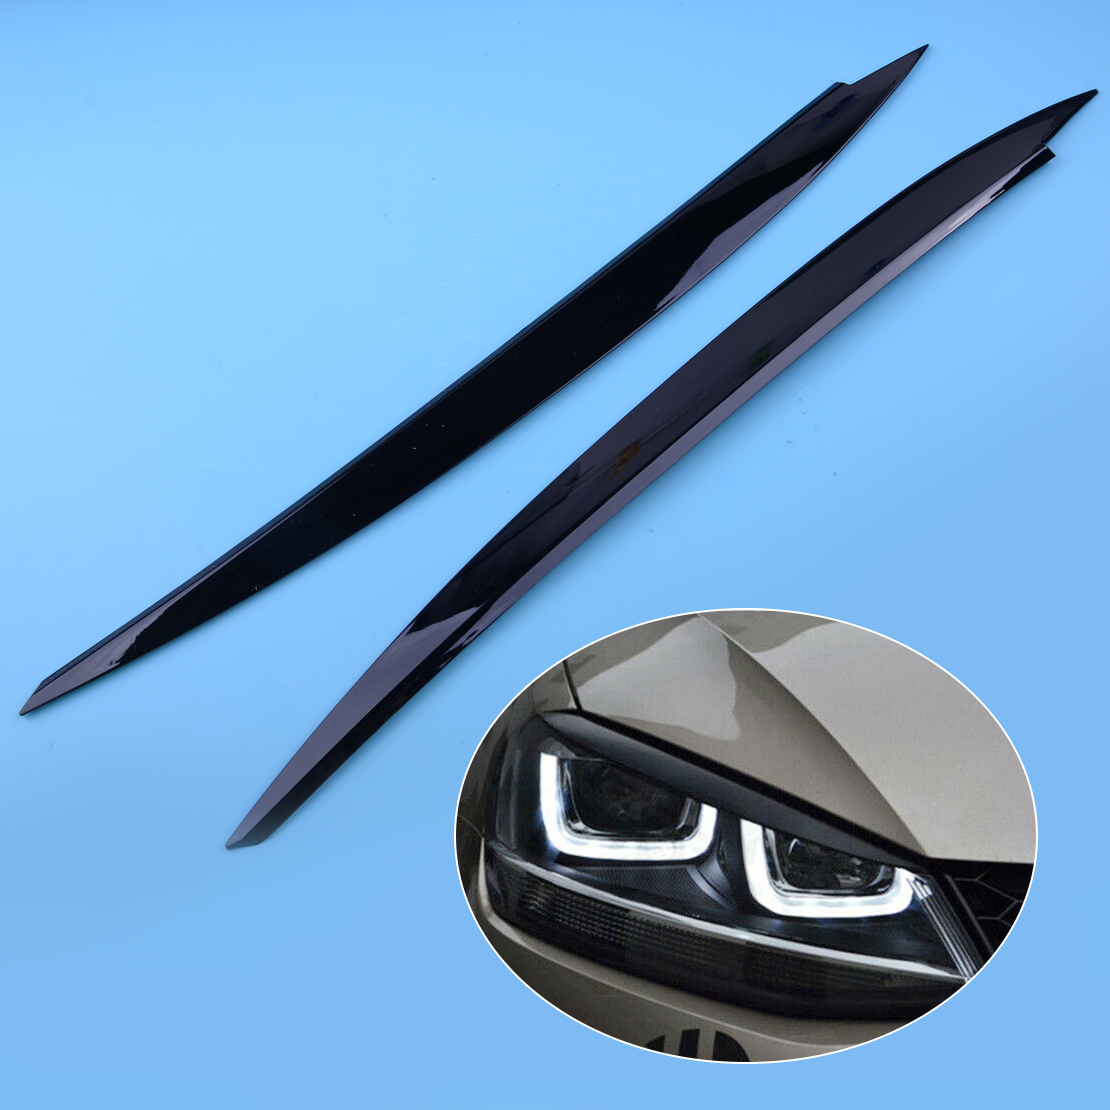 CITALL 2pcs ABS Black Headlight Eyebrow Eyelids Decoration Cover Trim Fit For <font><b>VW</b></font> <font><b>Golf</b></font> <font><b>7</b></font> VII GTI <font><b>GTD</b></font> GTE R MK7 image